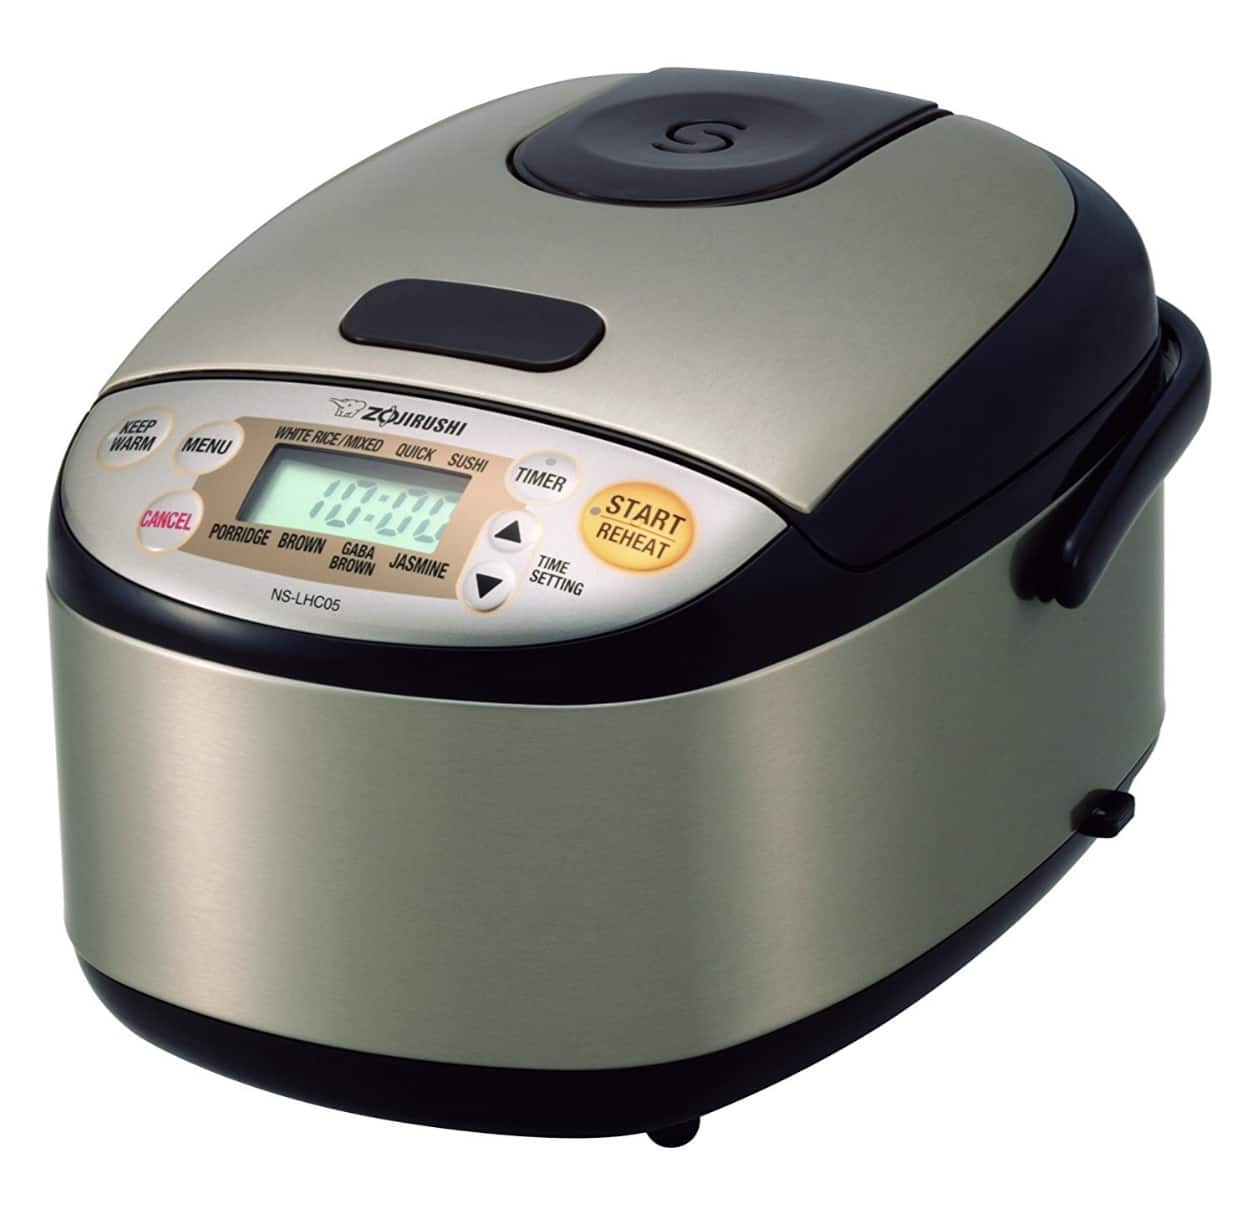 $105.38 Zojirushi NS-LHC05XT Micom Rice Cooker & Warmer, Stainless Dark Brown